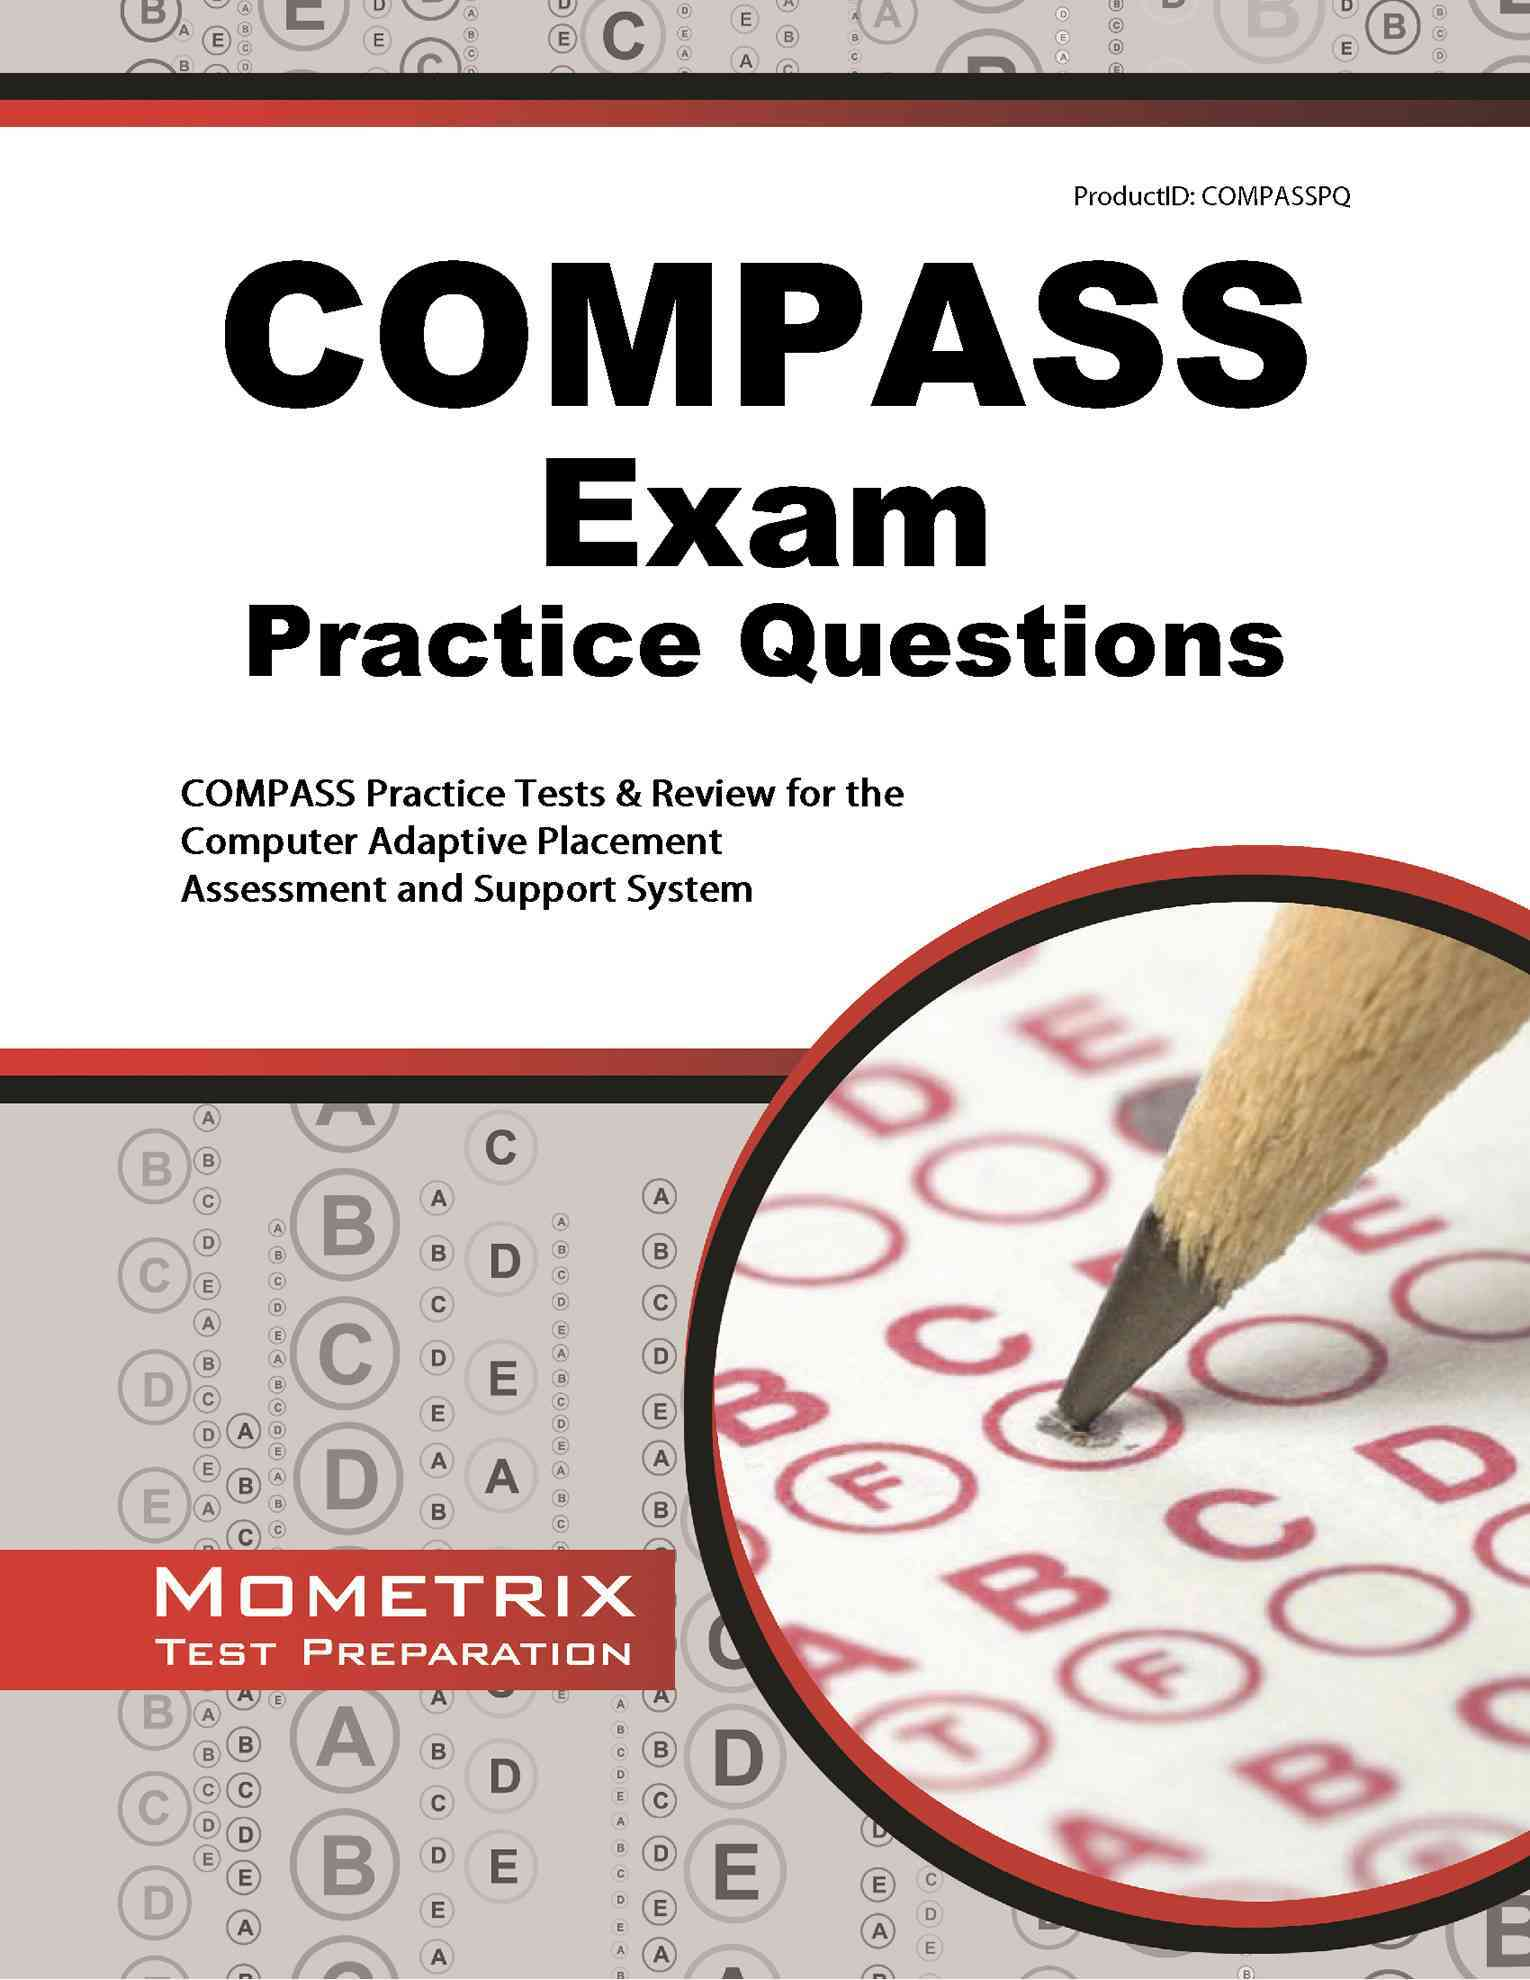 Compass Exam Practice Questions By Compass Exam Secrets Team (EDT)